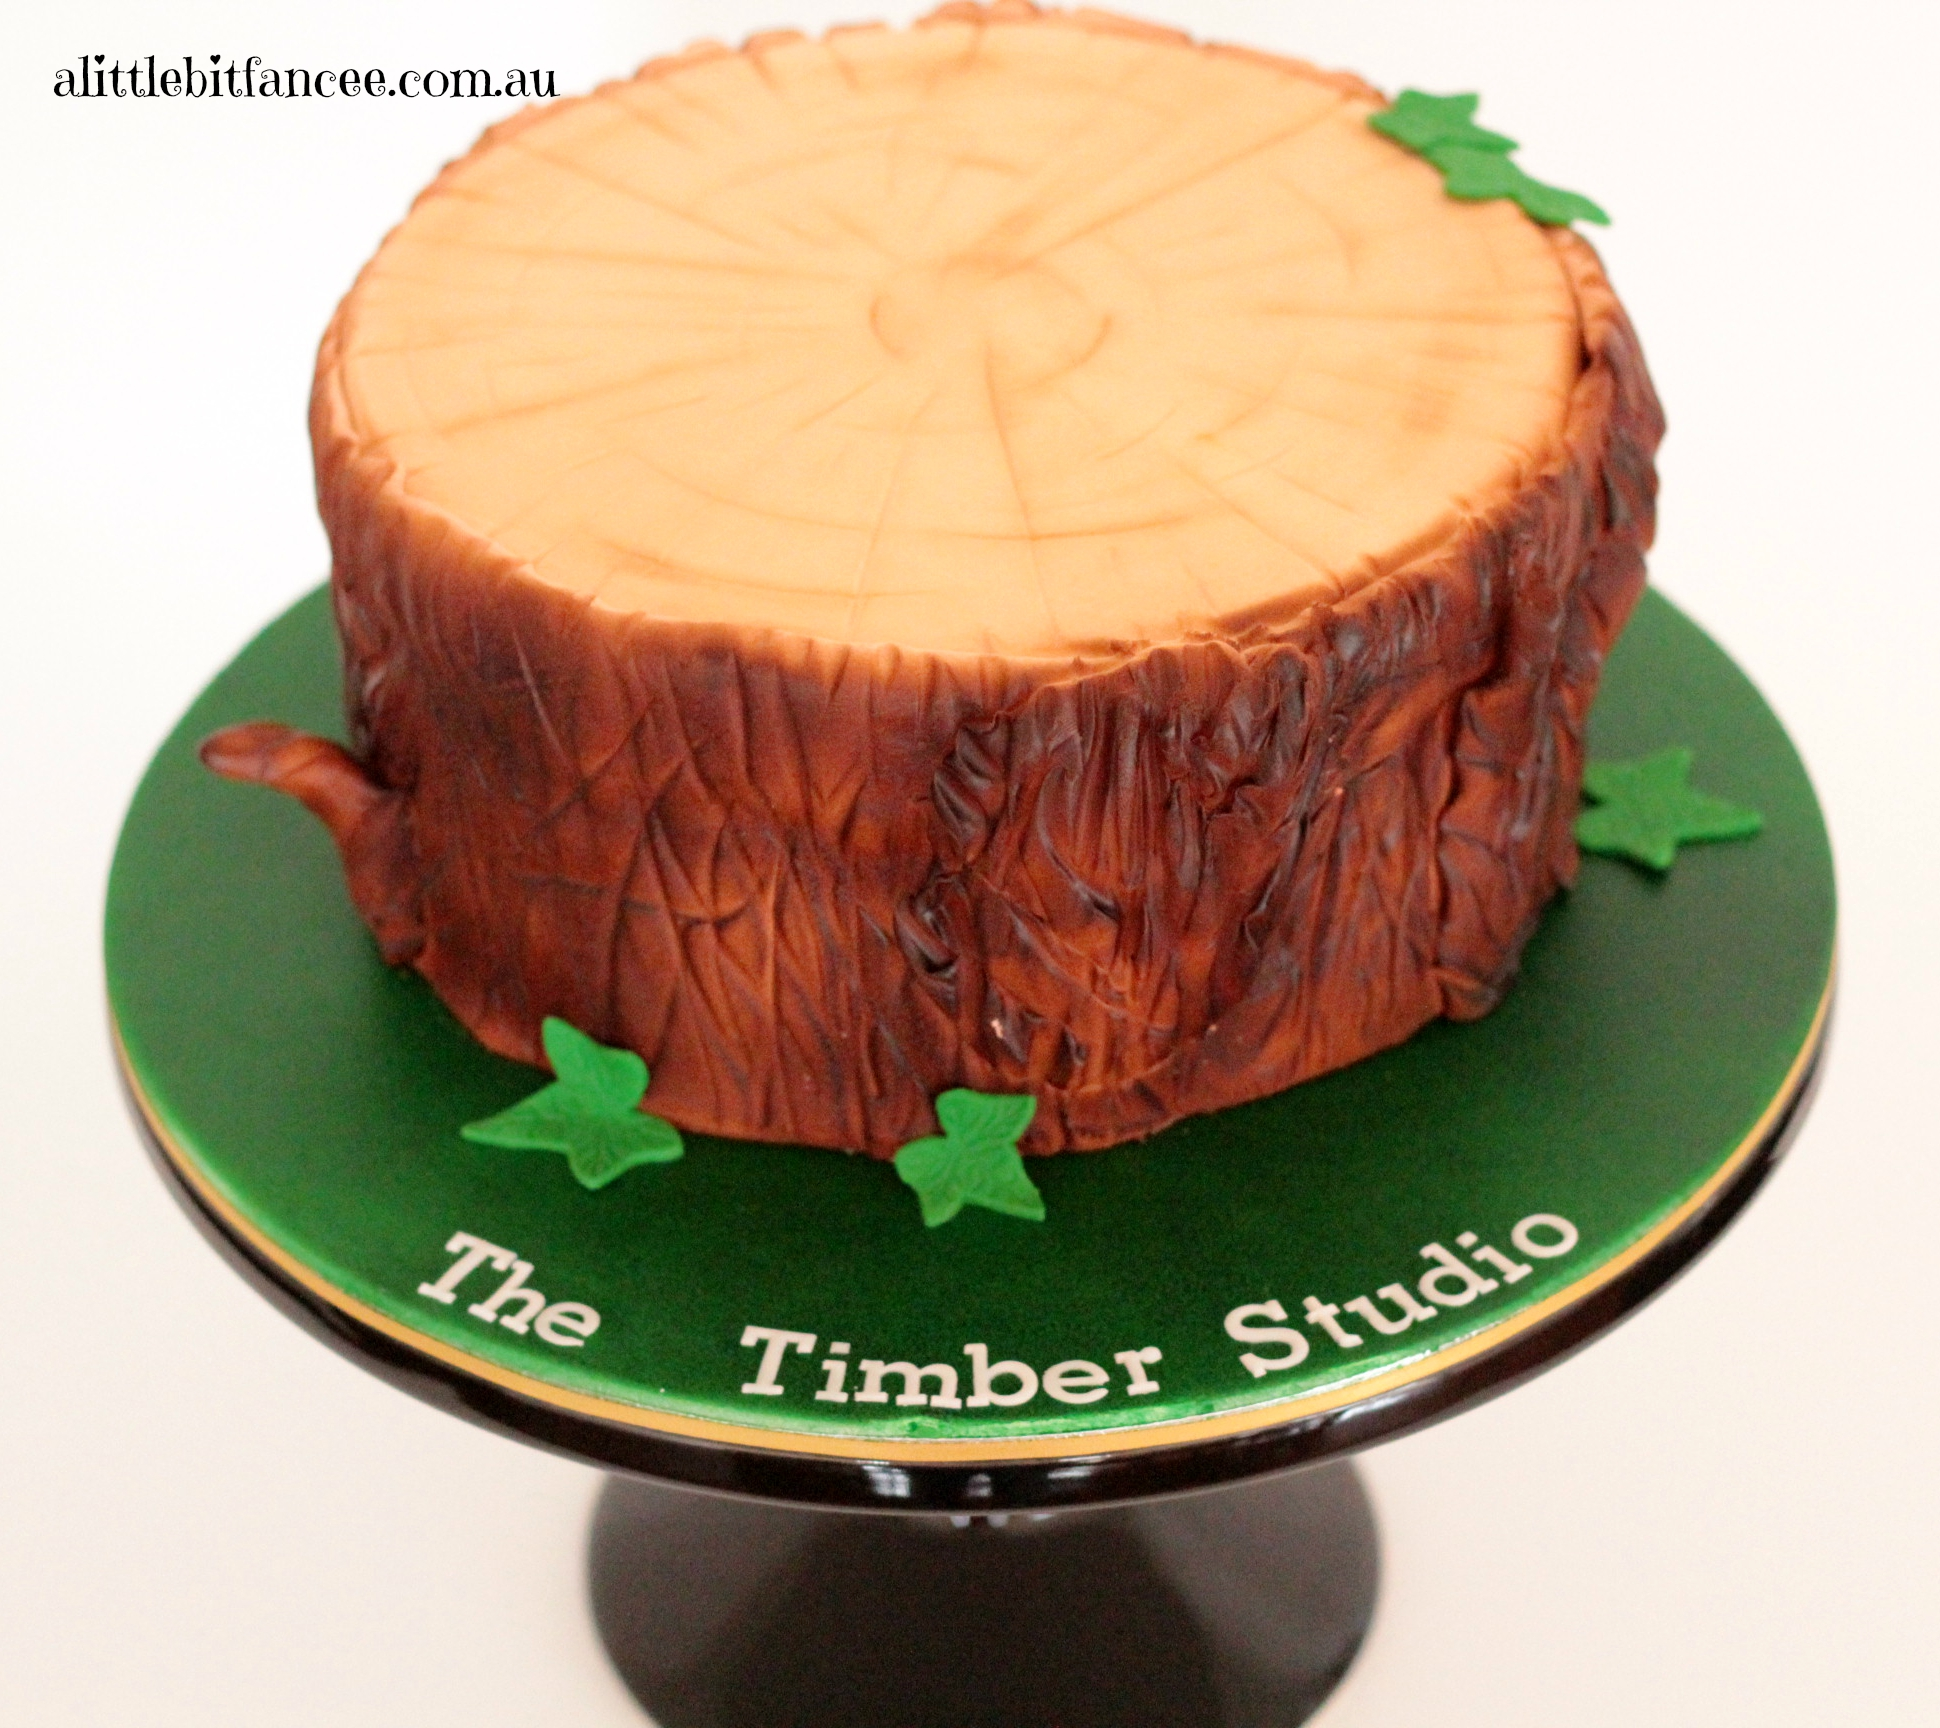 Tree trunk / stump cake